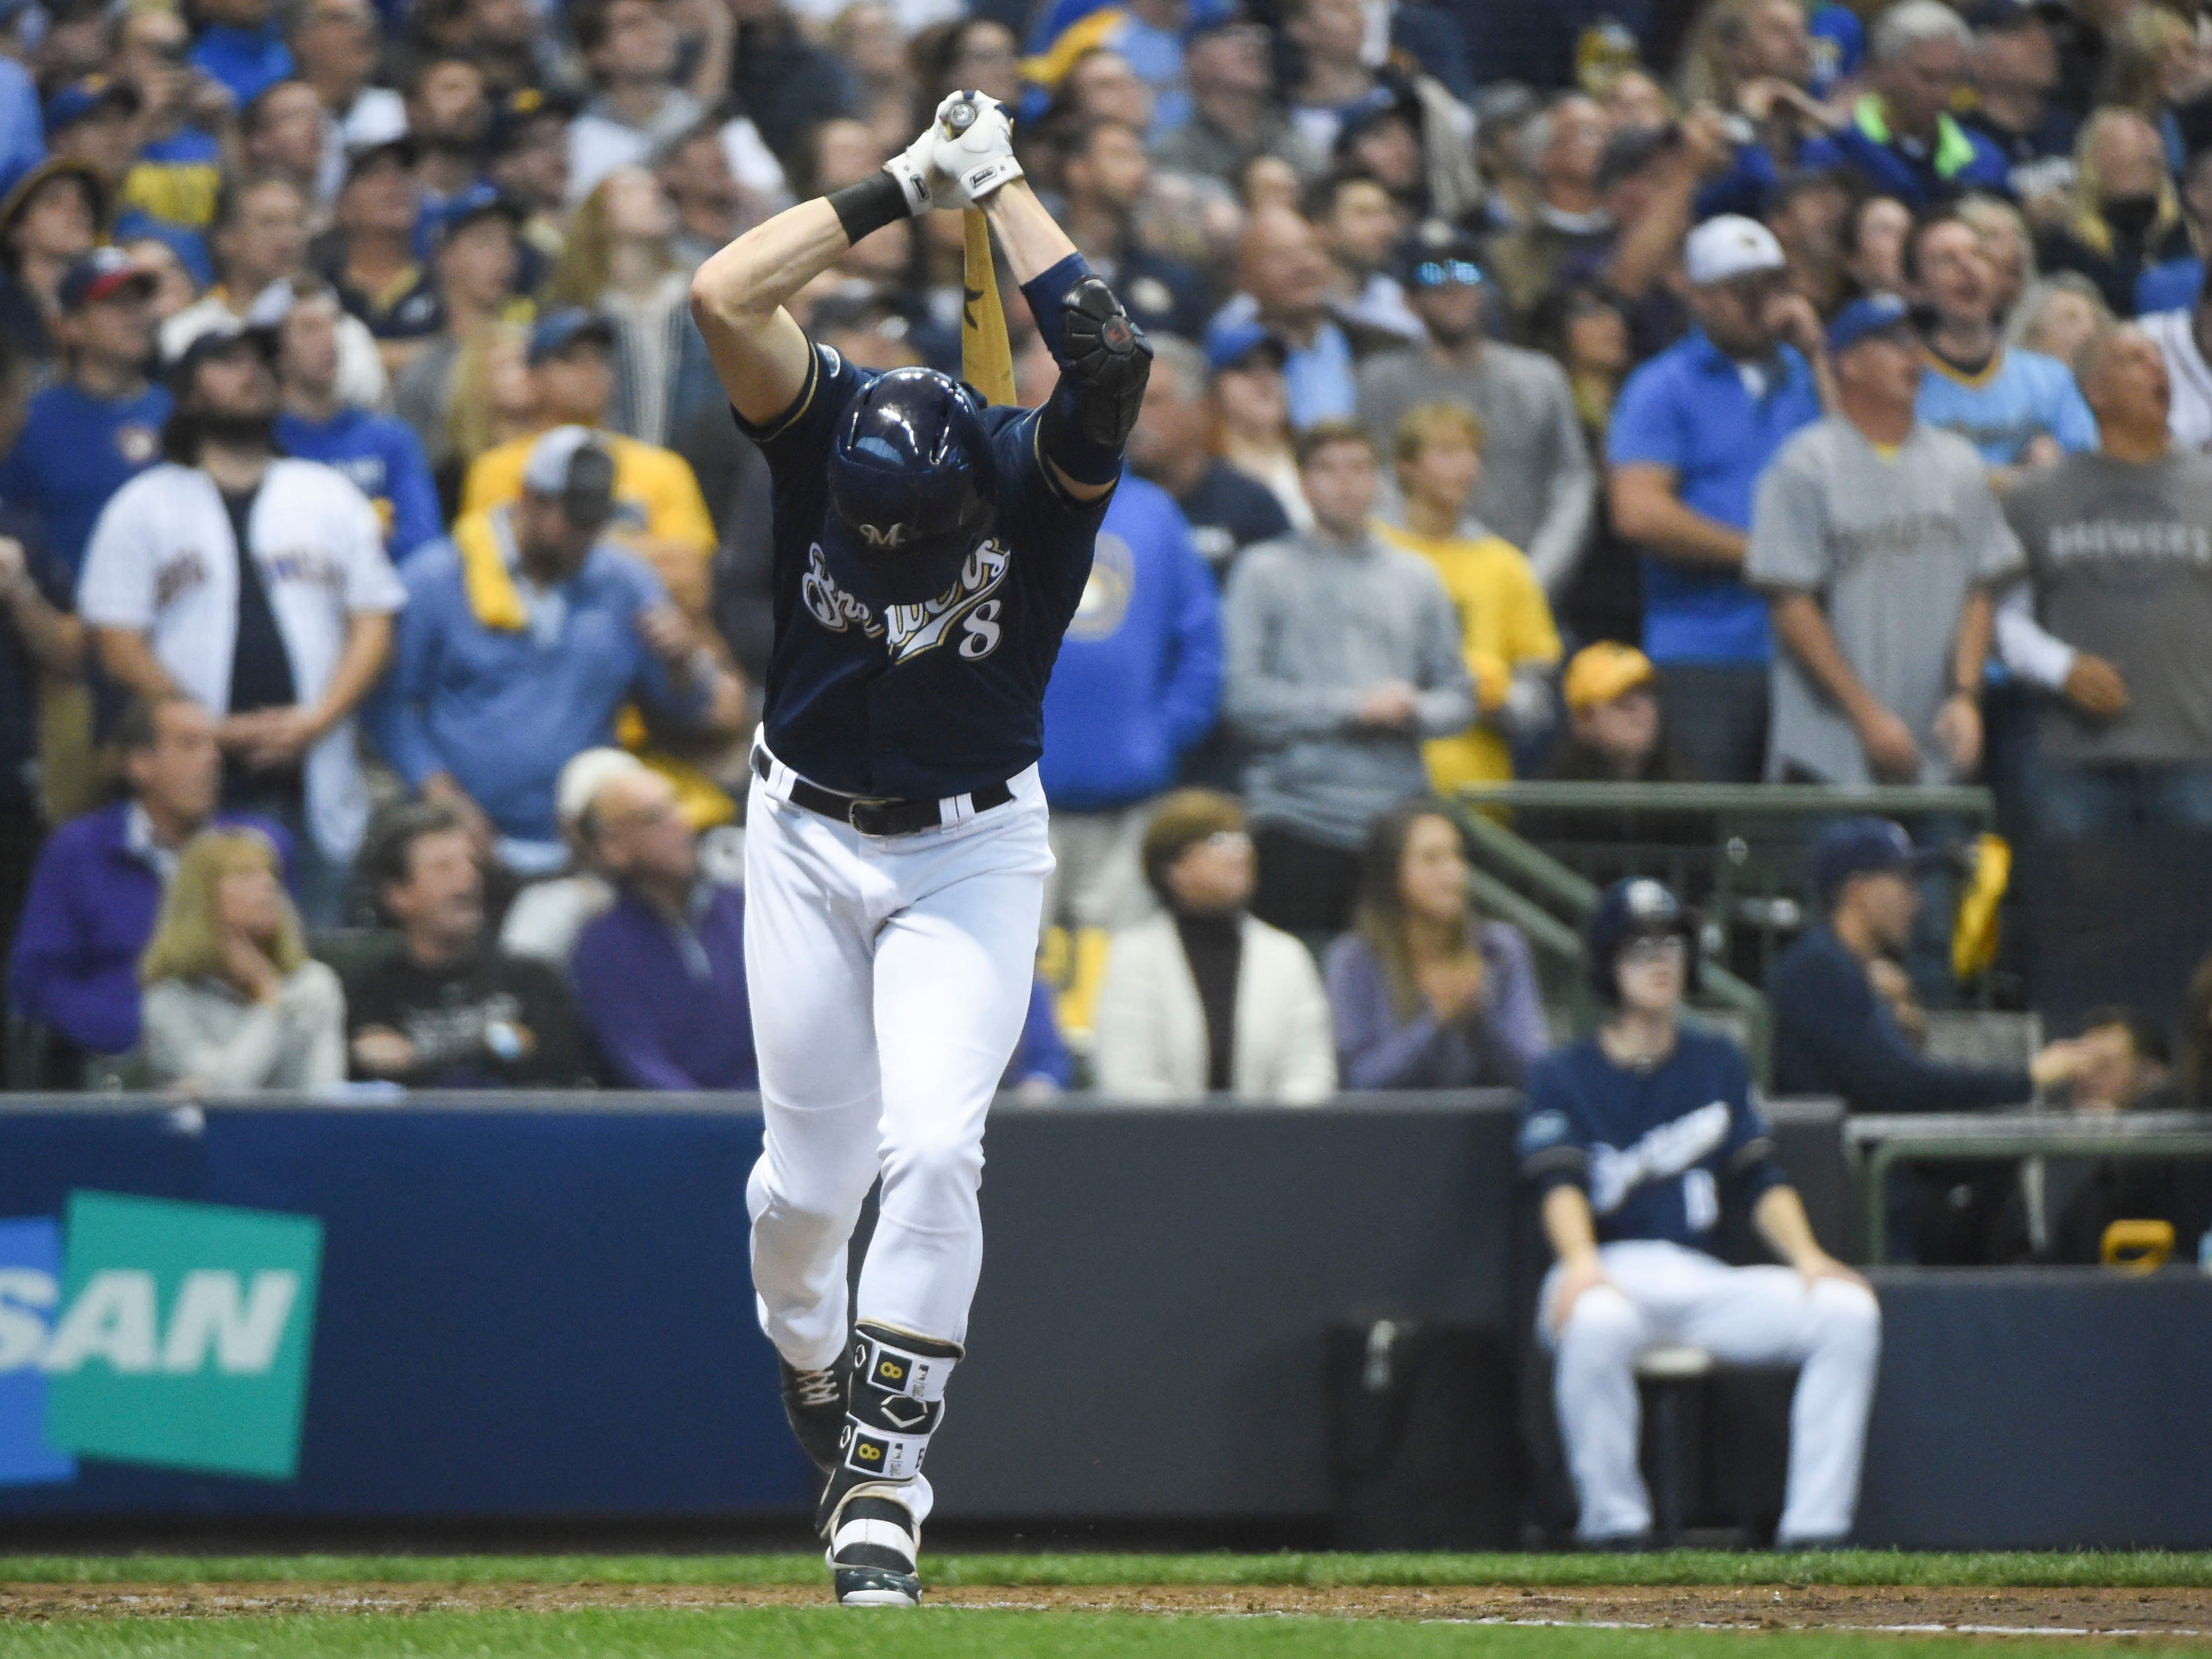 NLDS Game 2: Brewers left fielder Ryan Braun gets upset after flying out with the bases loaded in the third inning.